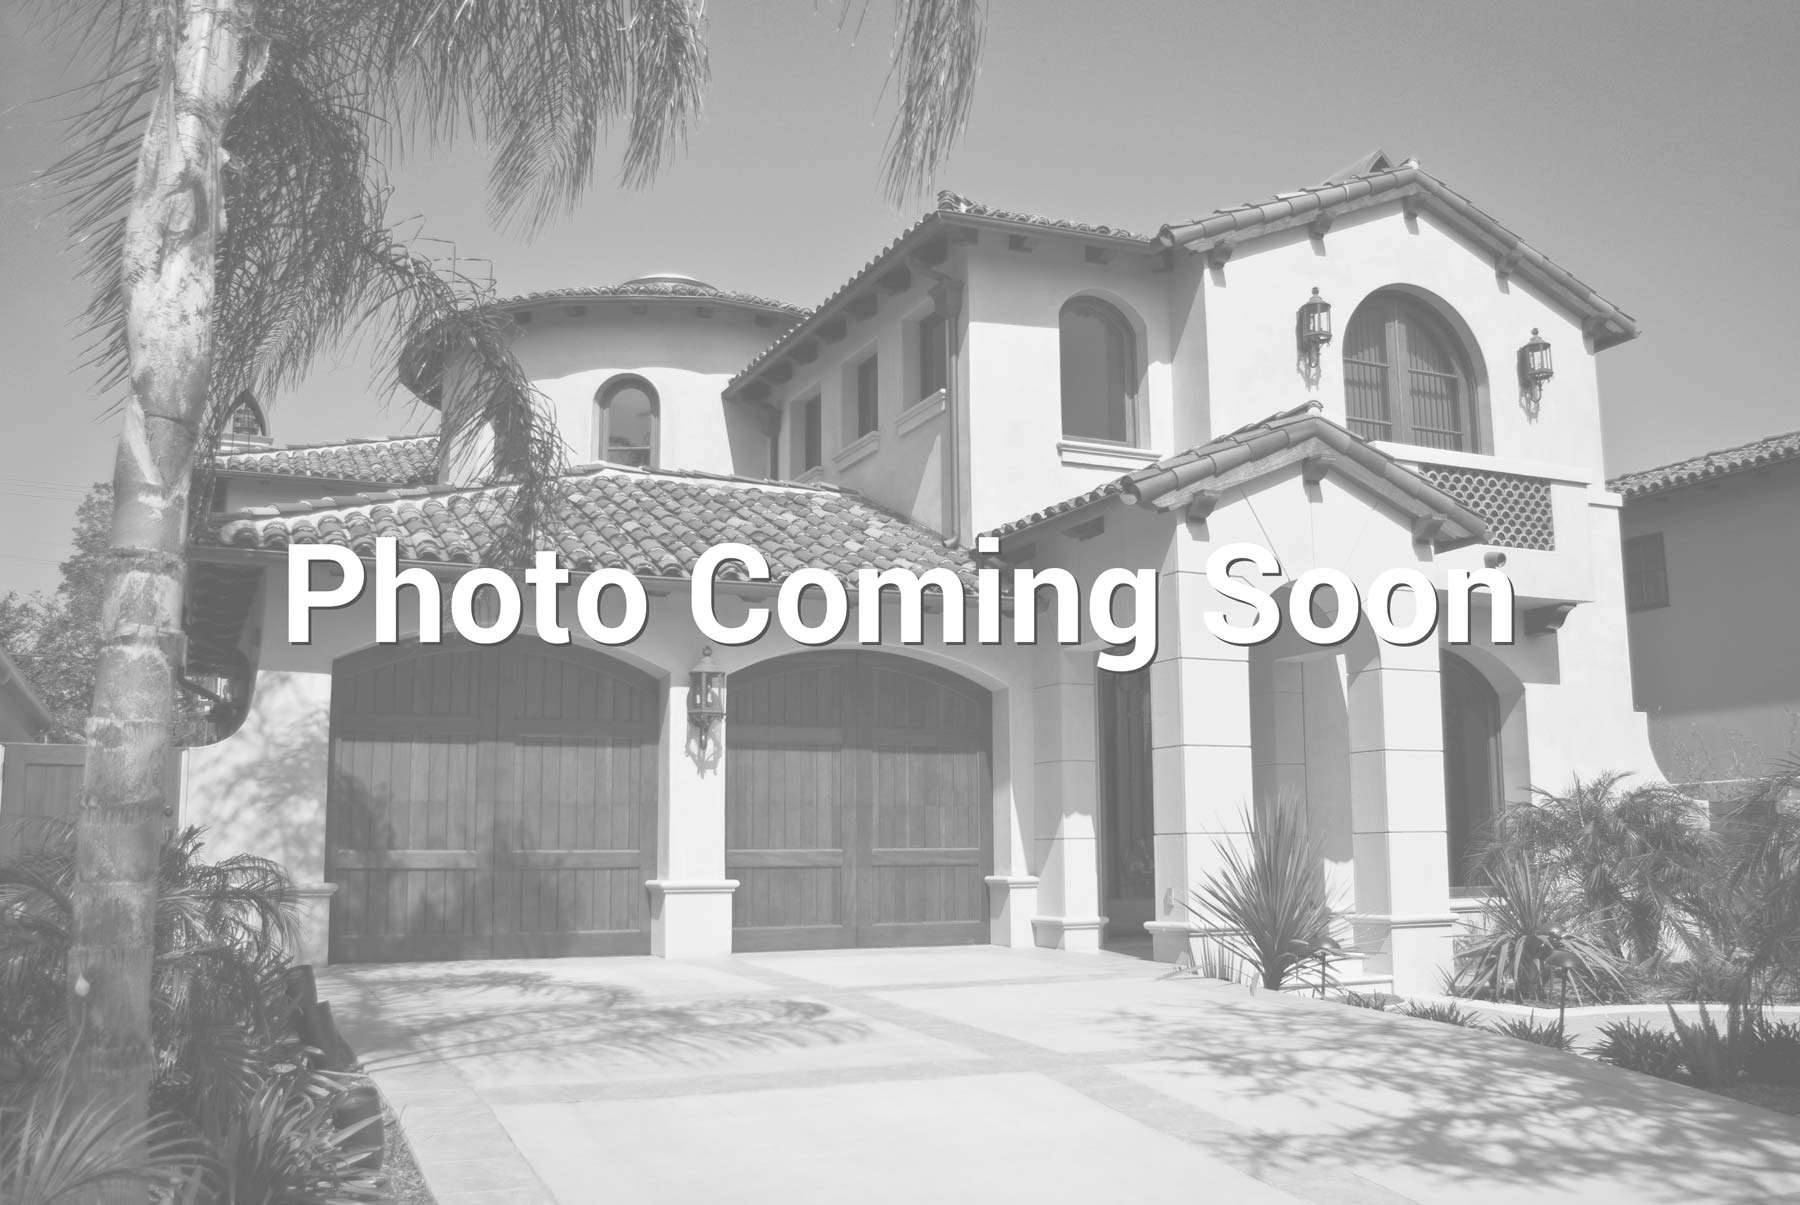 $1,540,000 - 4Br/3Ba - Home for Sale in Metes & Bounds, Chandler